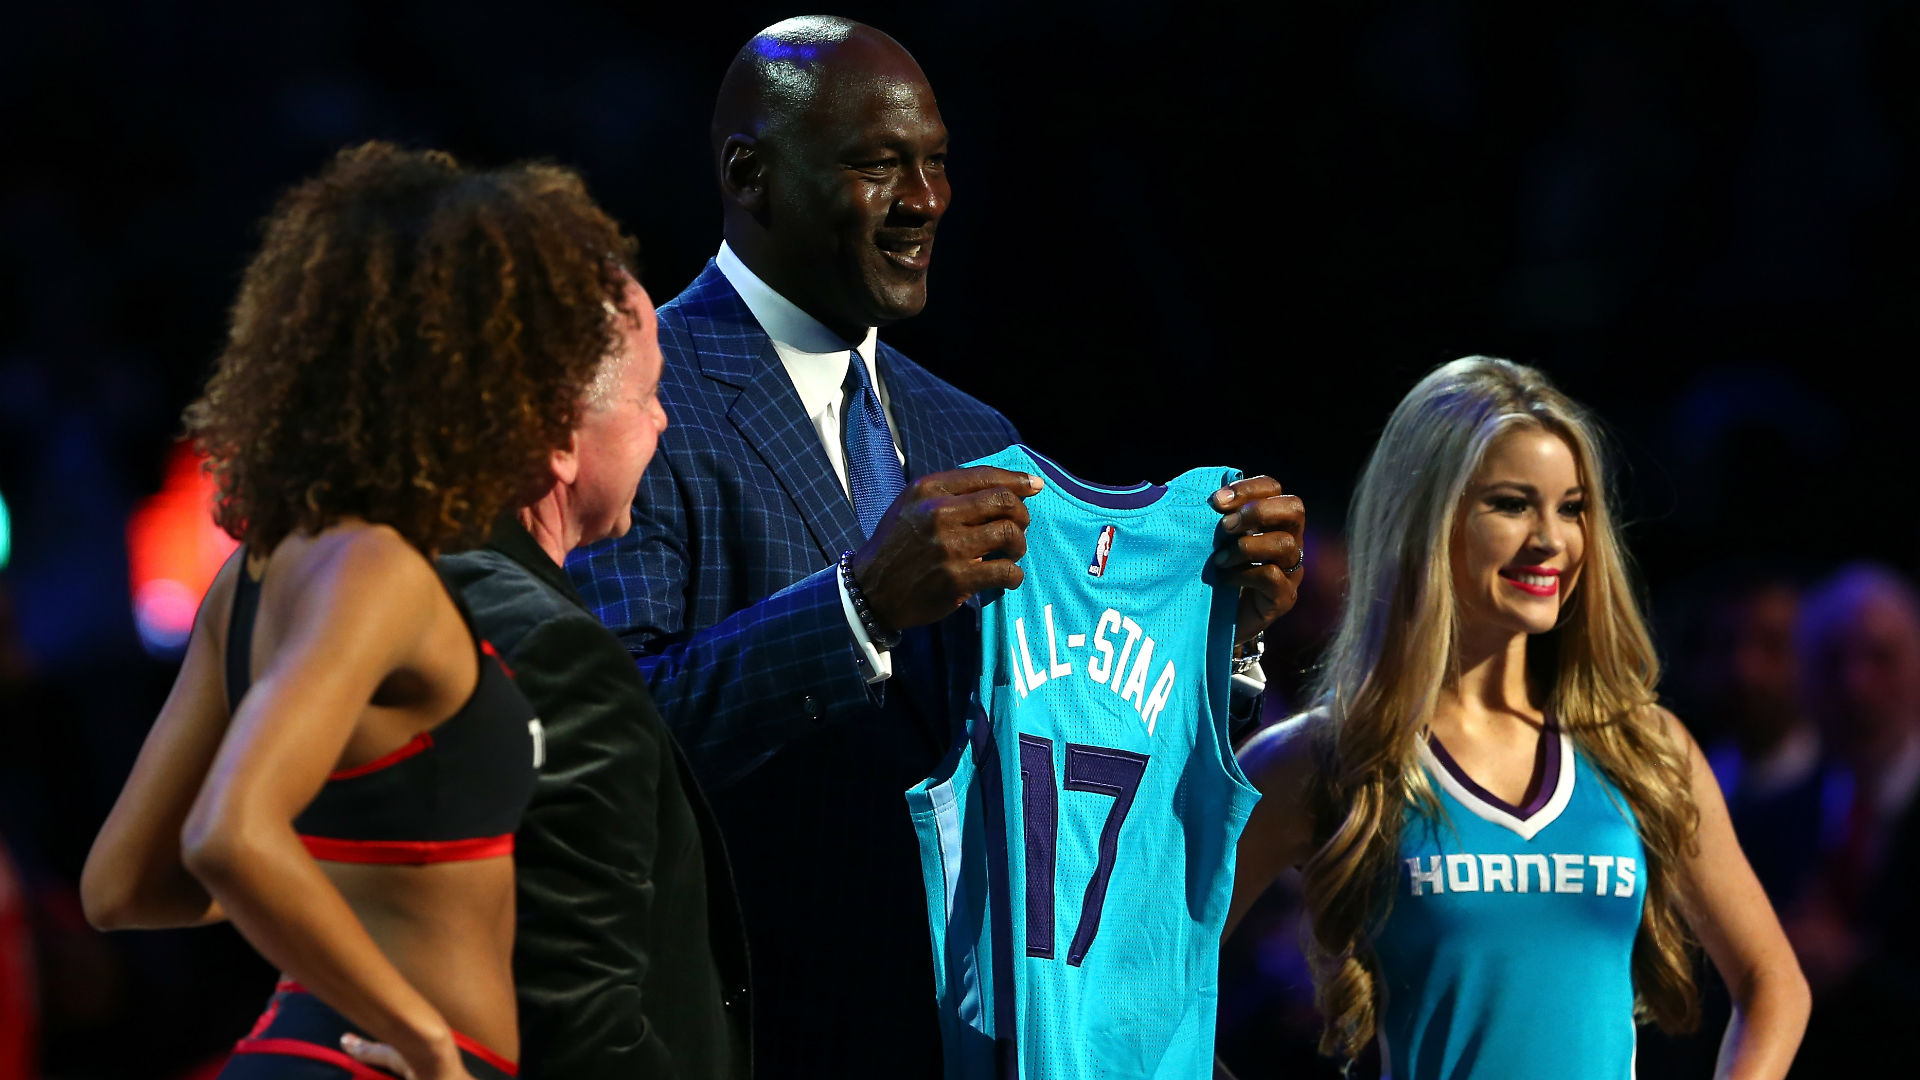 NBA All-Star Game coming to Charlotte in 2019